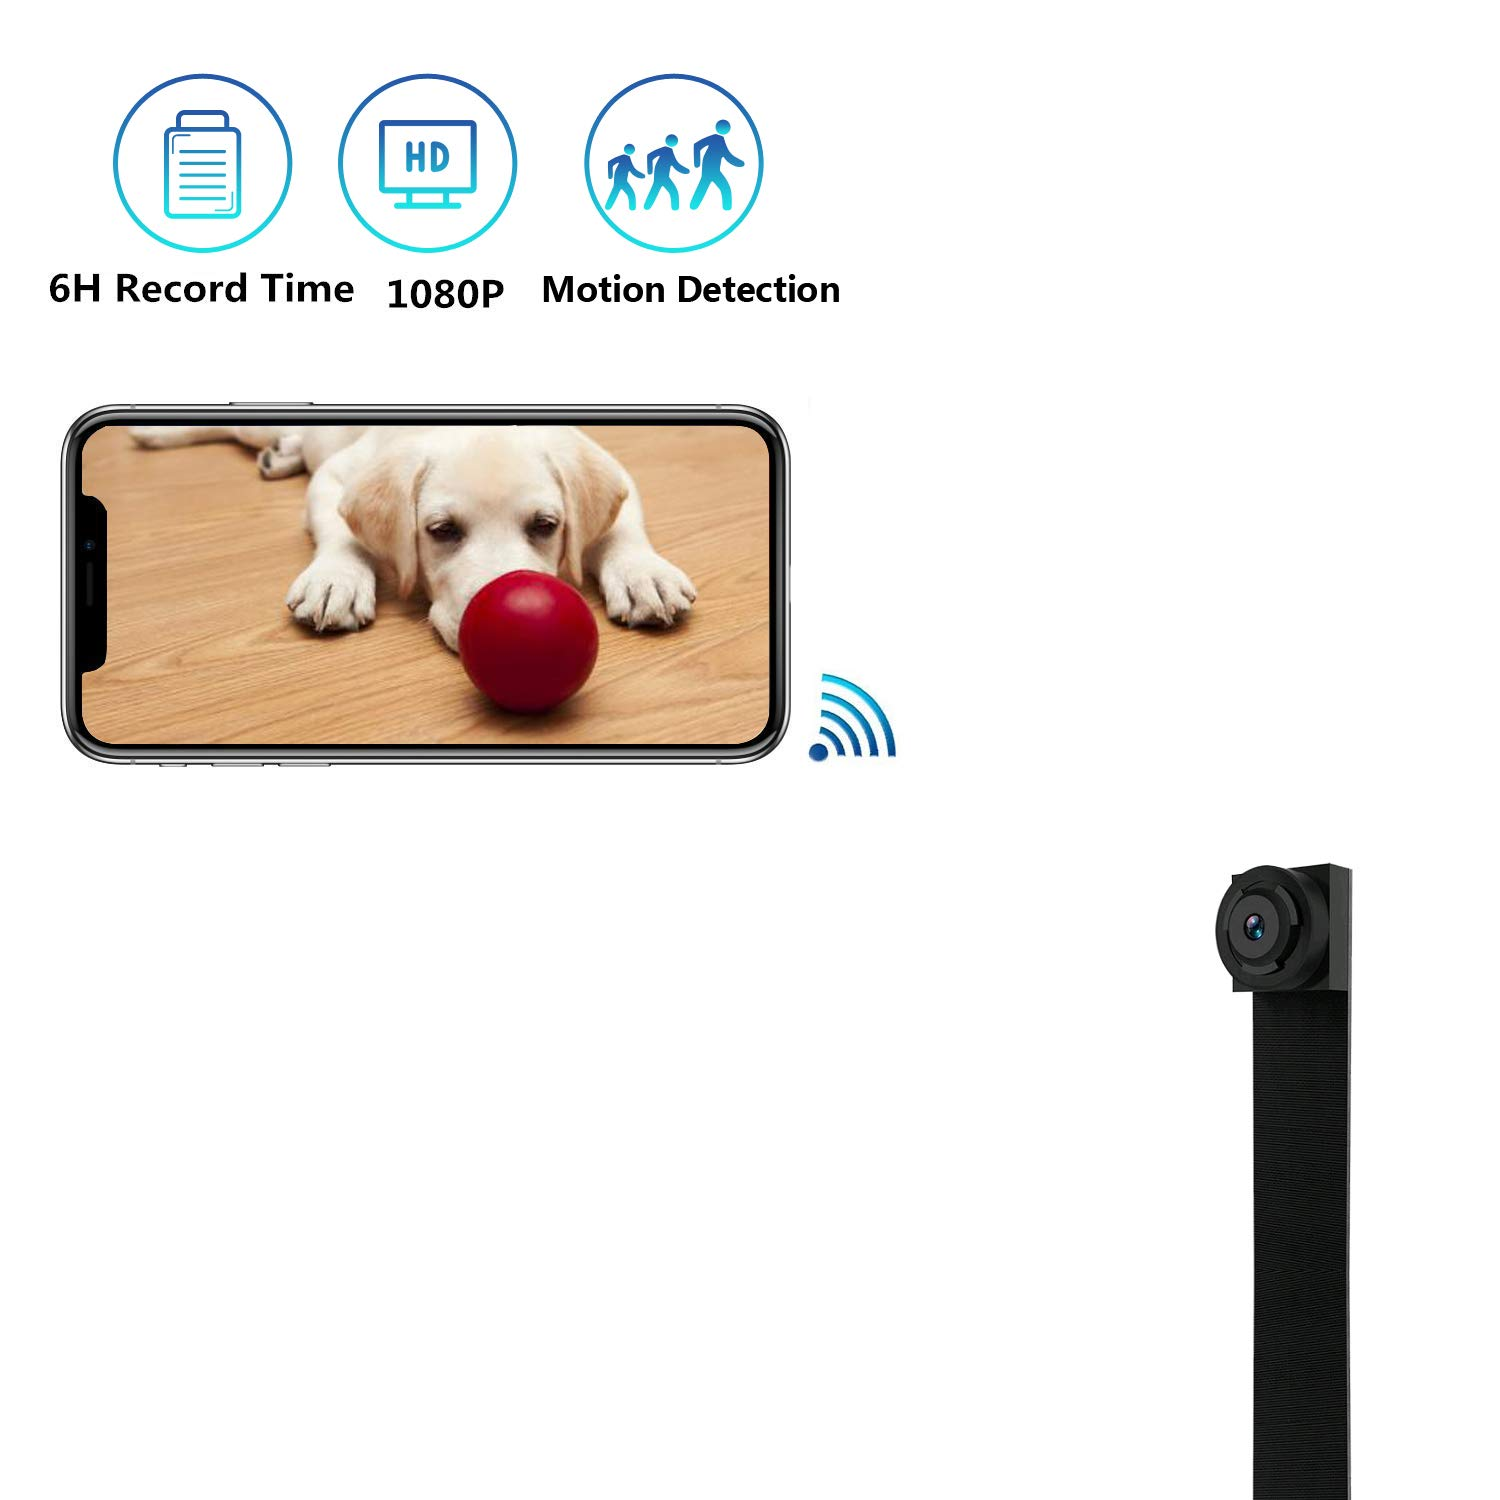 Mini Spy Camera WiFi Hidden Camera HD 1080P Small Nanny Cam Home Office Security Camera with Motion Detection, Portable IP Camera Recording Indoor and Outdoor by Aveskon